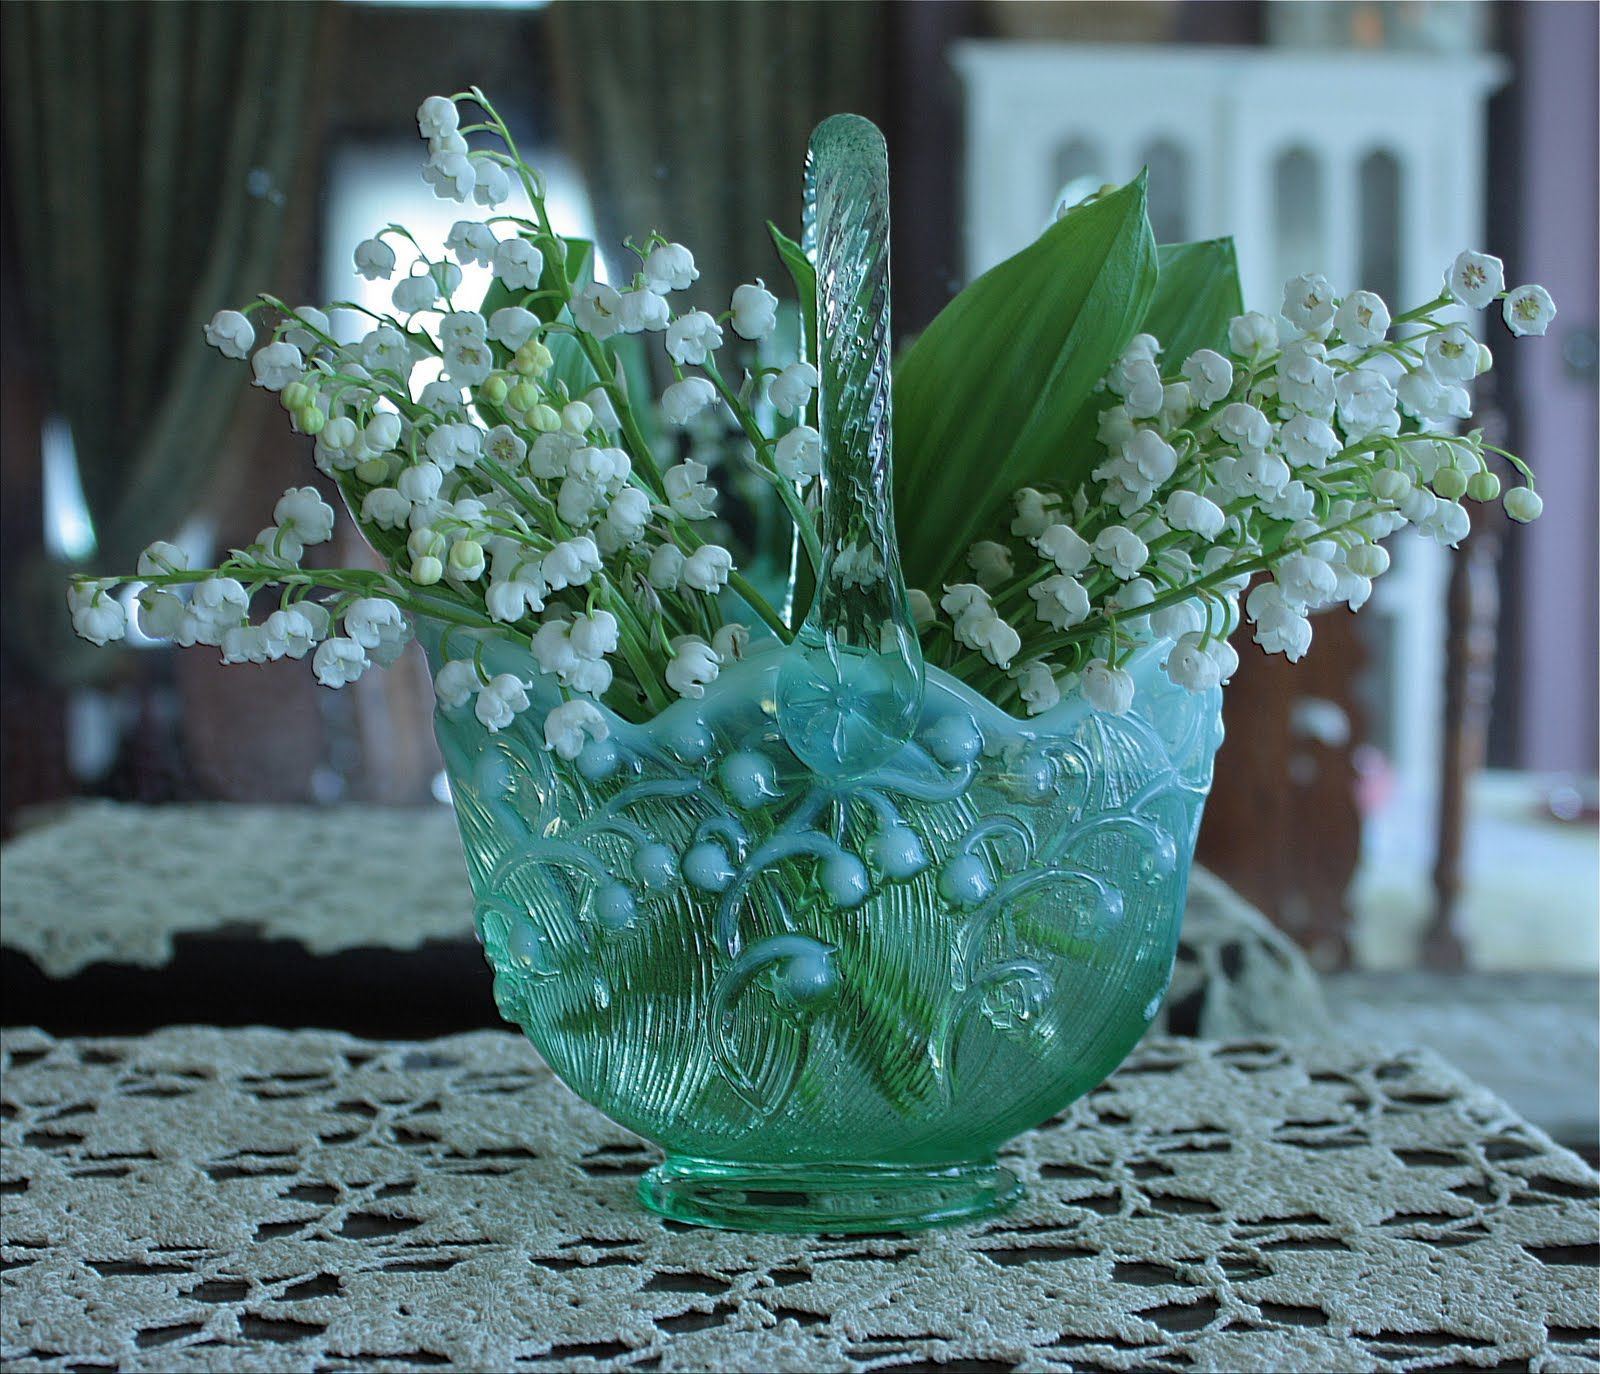 Lily of the valley lily of the valley flowers lily